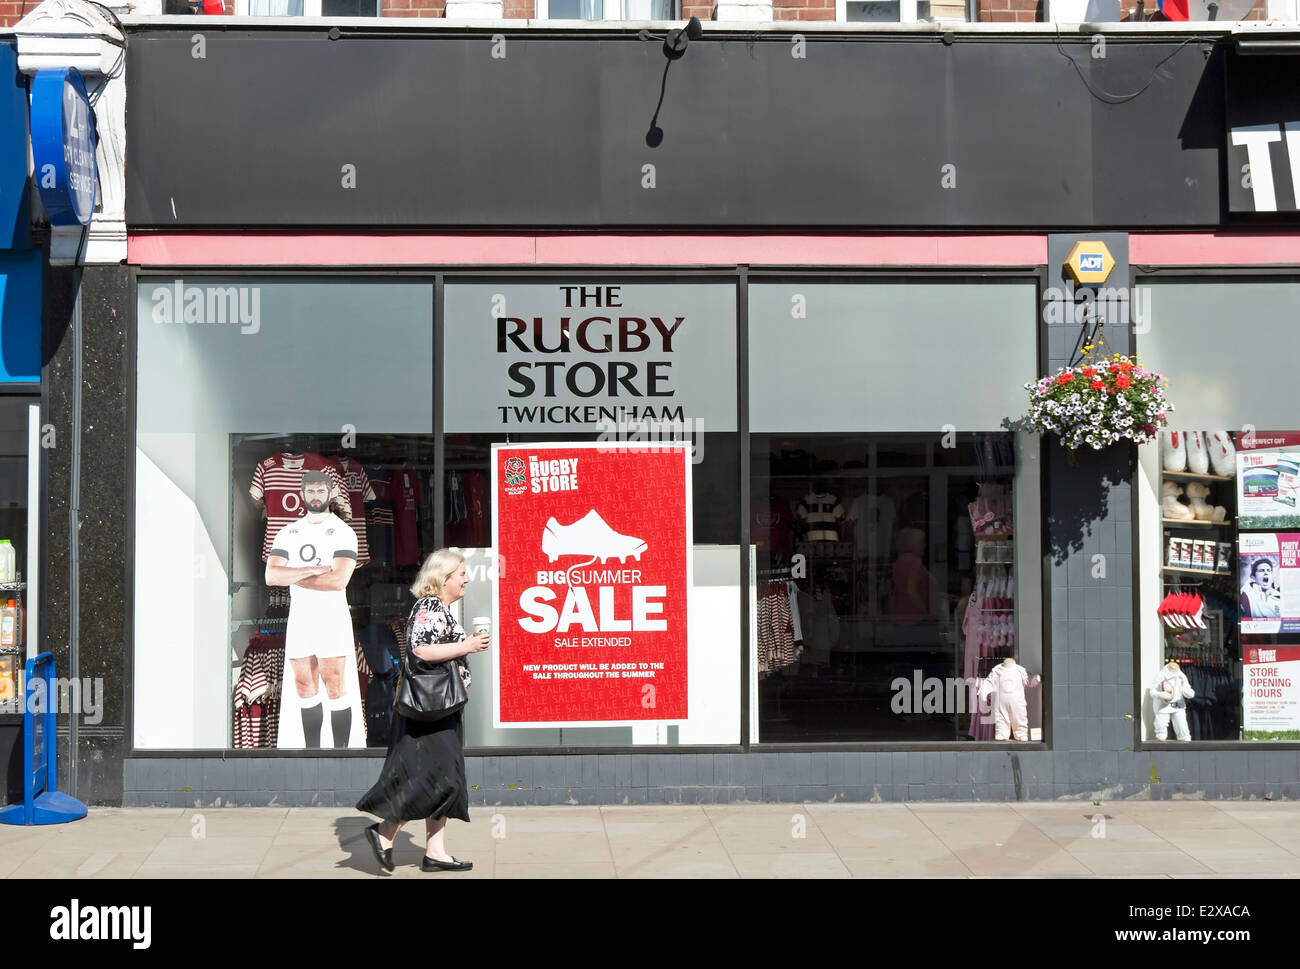 exterior of the rugby store, selling rugby related merchandise and with sale poster in window, in twickenham, middlesex, - Stock Image